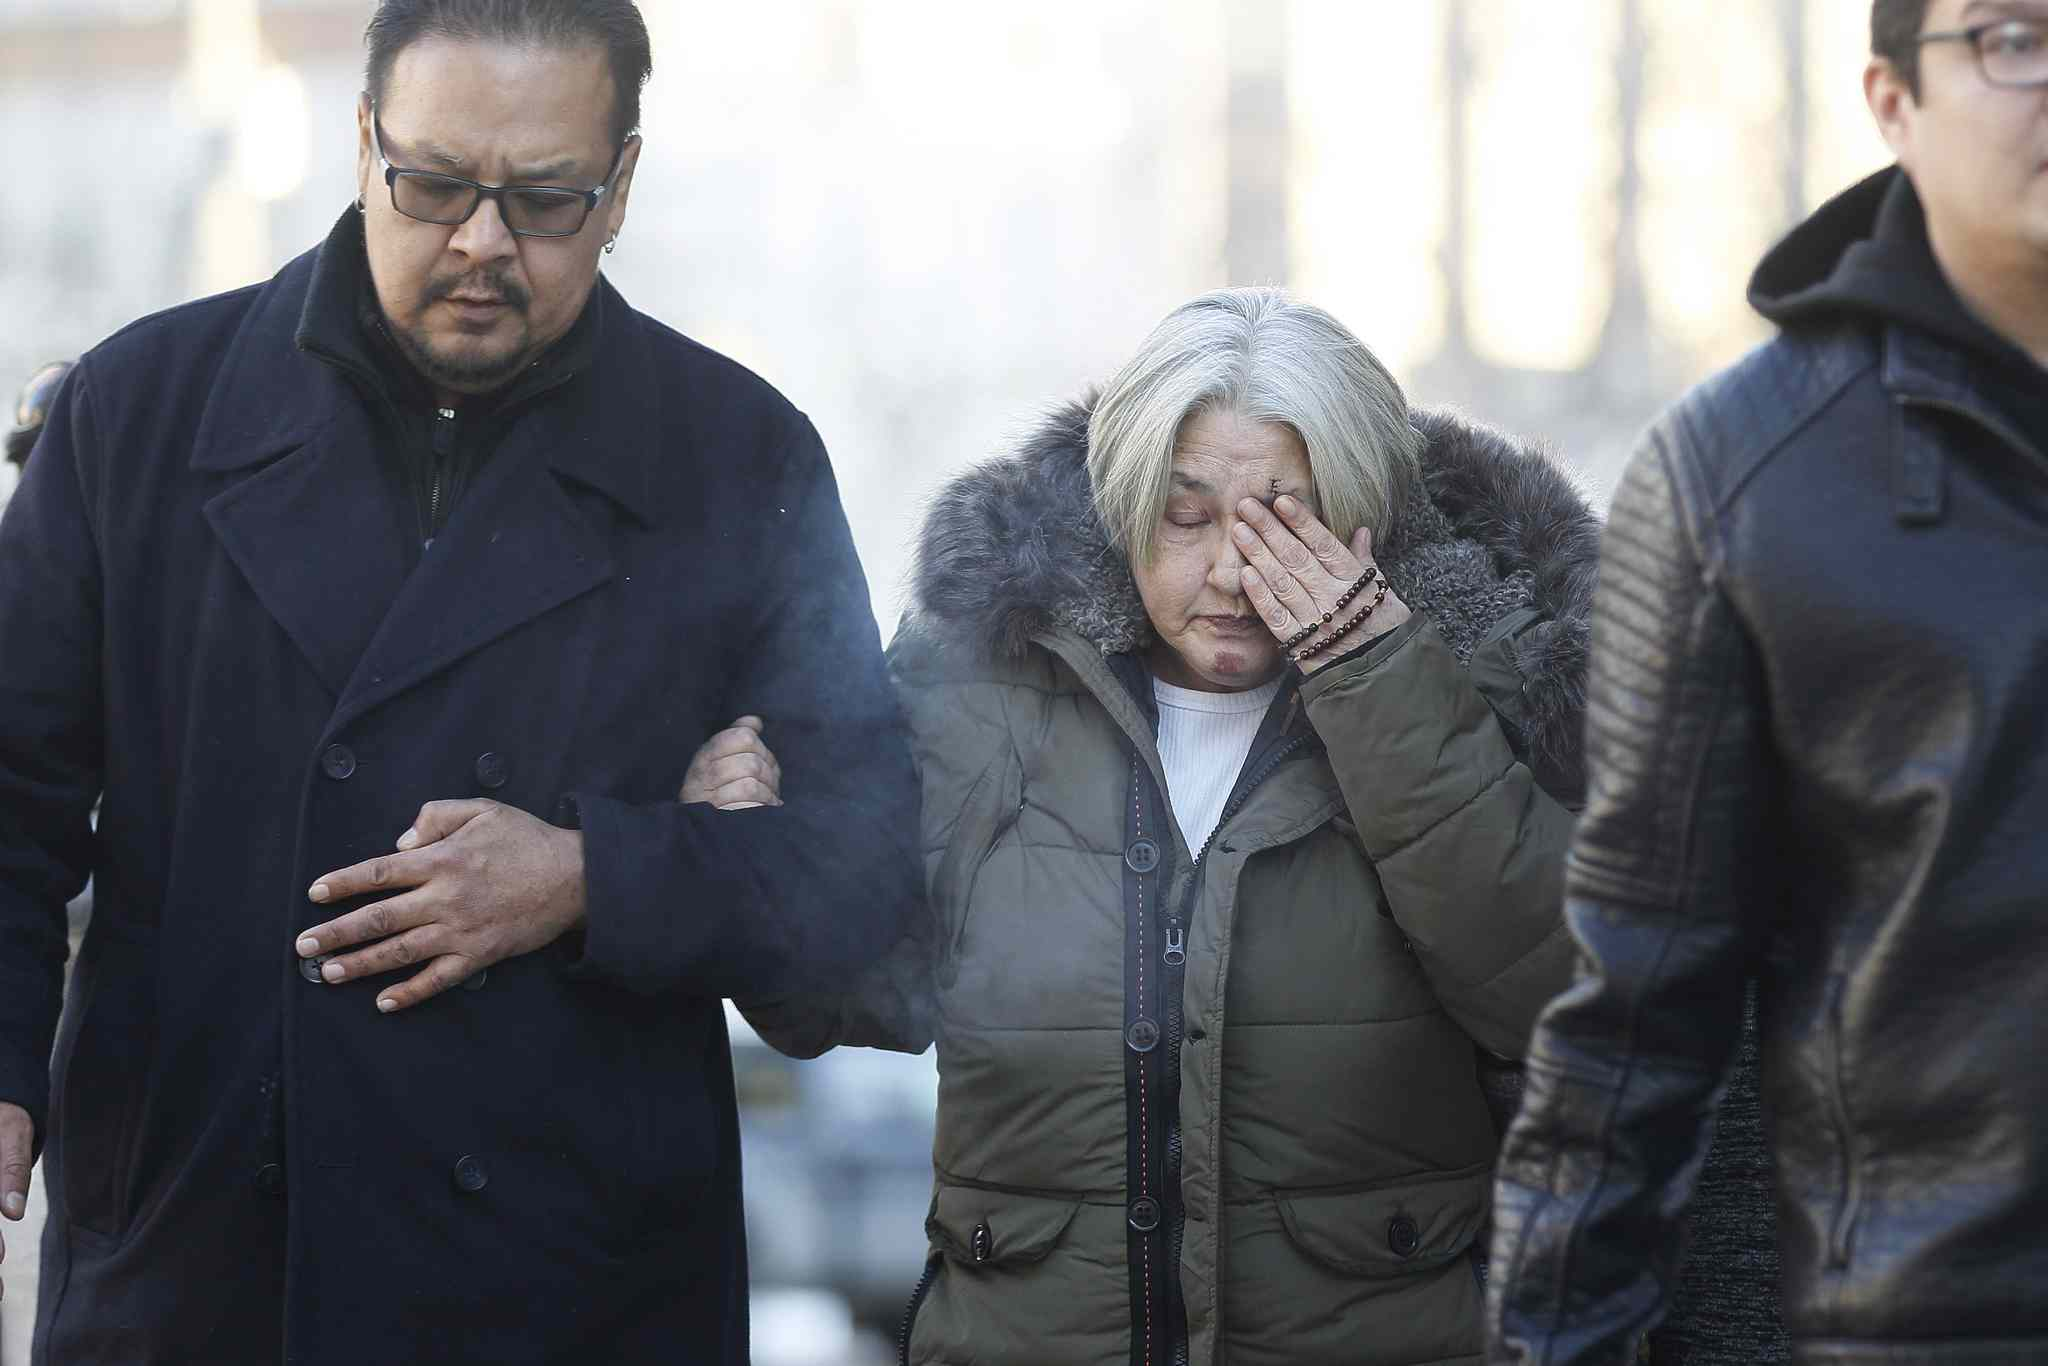 Thelma Favel, centre, Tina Fontaine's great-aunt and the woman who raised her, weeps as she enters the law courts in Winnipeg with Chief Kevin Hart and supporters the day the jury delivered a not-guilty verdict in the second degree murder trial of Raymond Cormier, Thursday, February 22, 2018. THE CANADIAN PRESS/John Woods